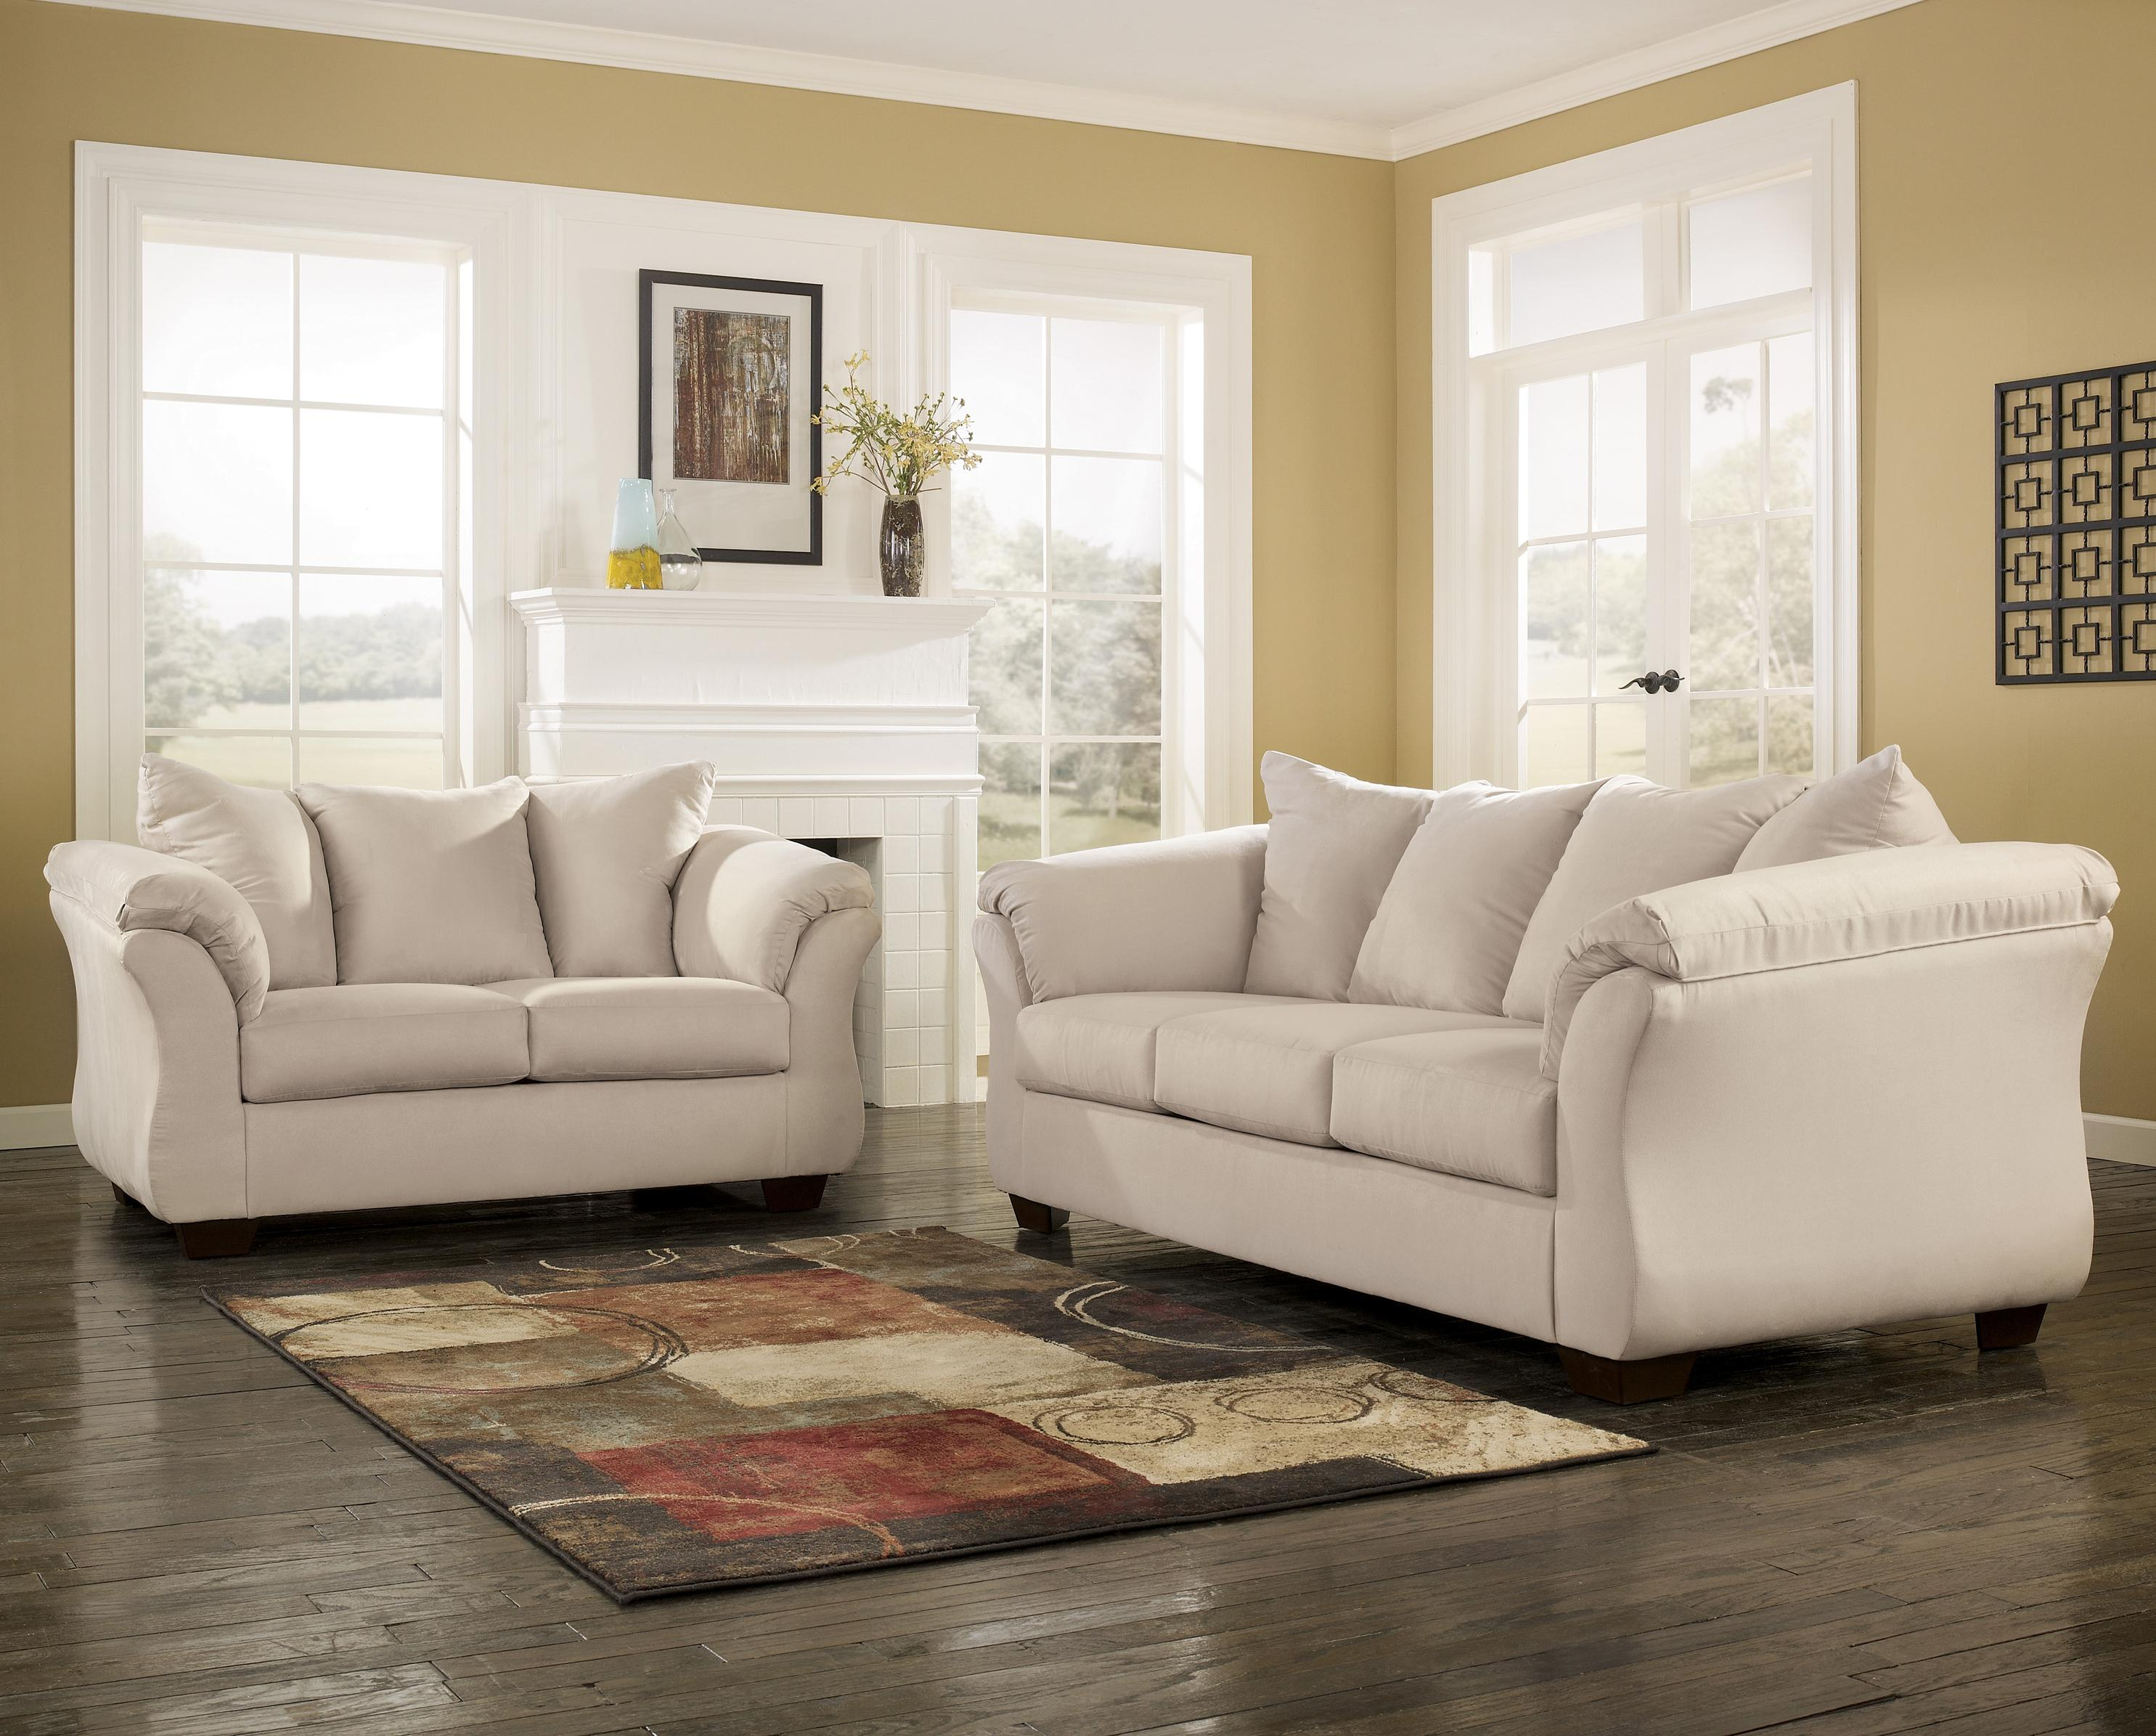 Signature Design by Ashley Darcy - Stone Contemporary Sectional Sofa ...